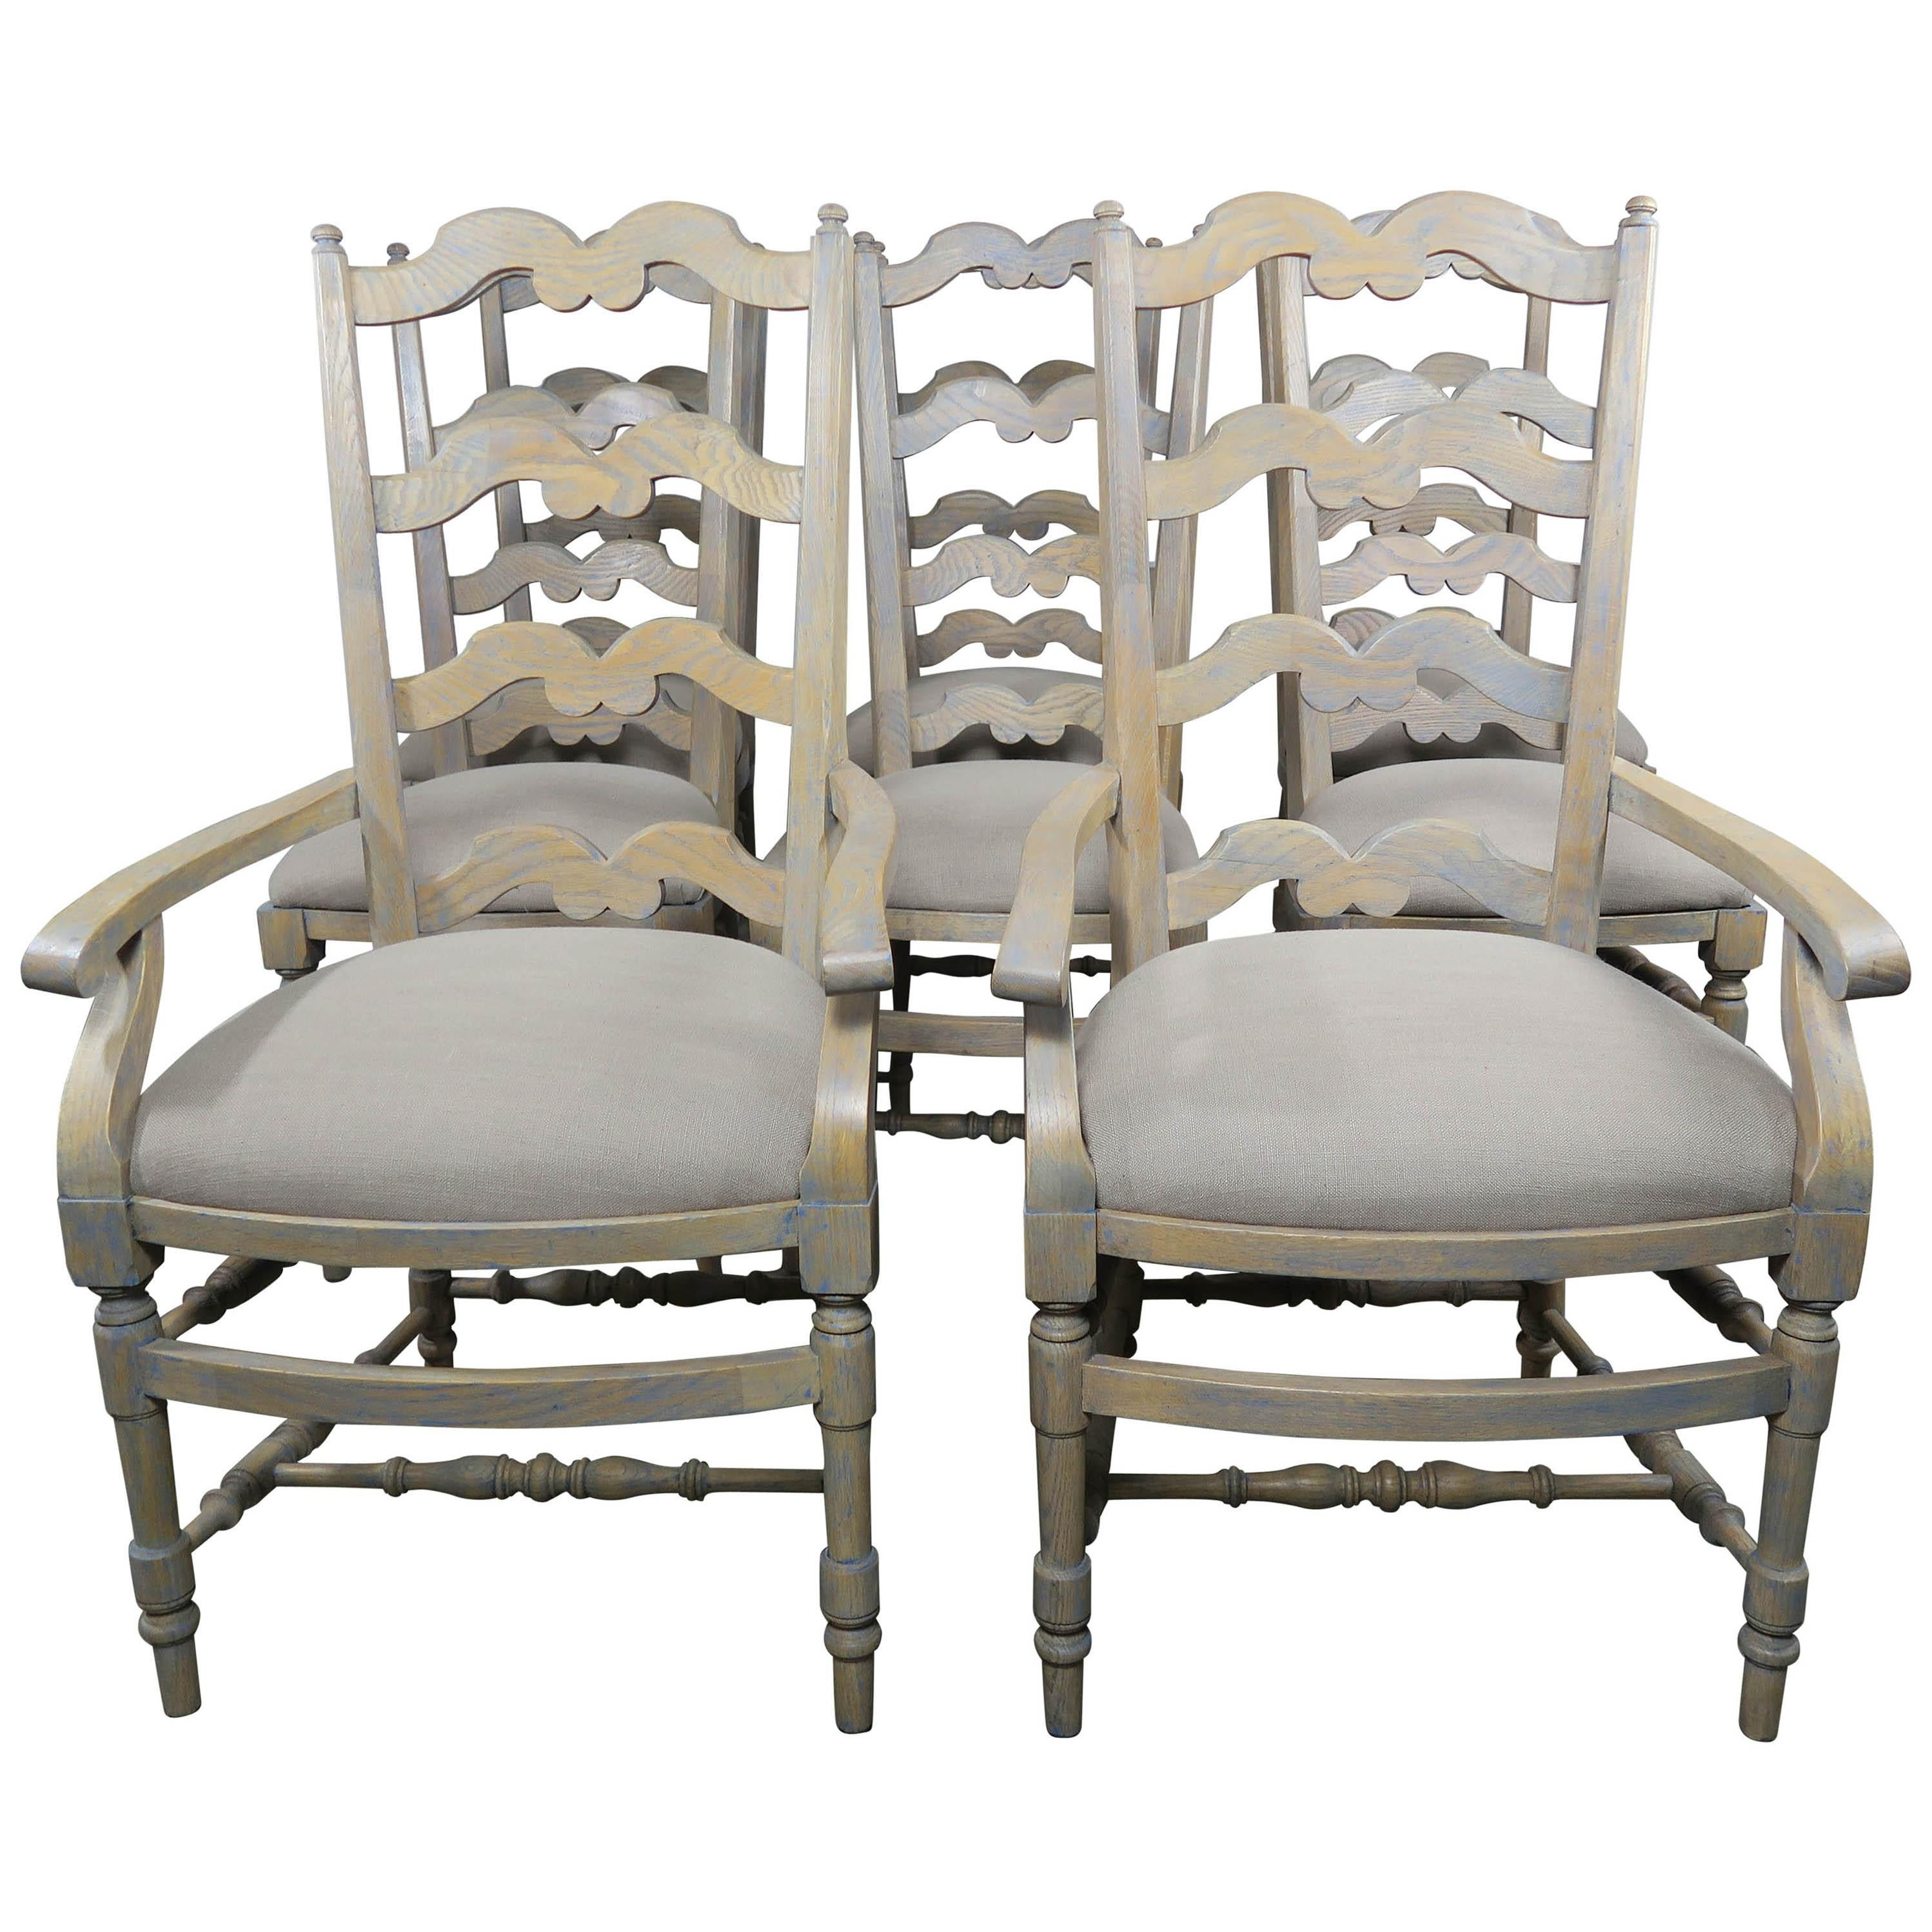 French Country Ladder Back Painted Dining Chairs, Set of 8